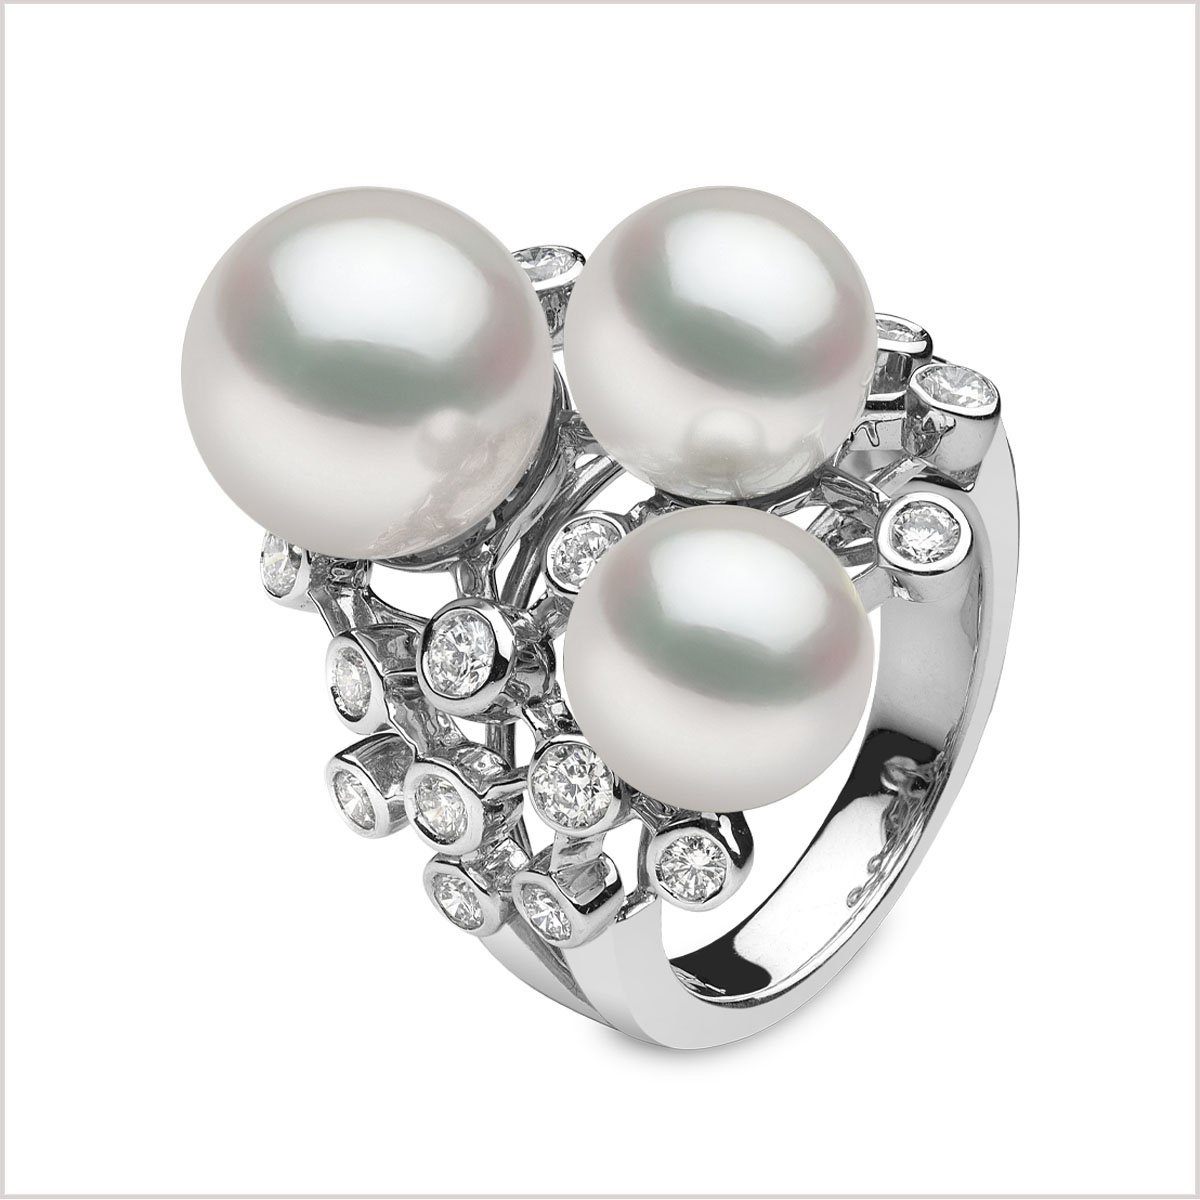 Q1163RING JZ w white pearls